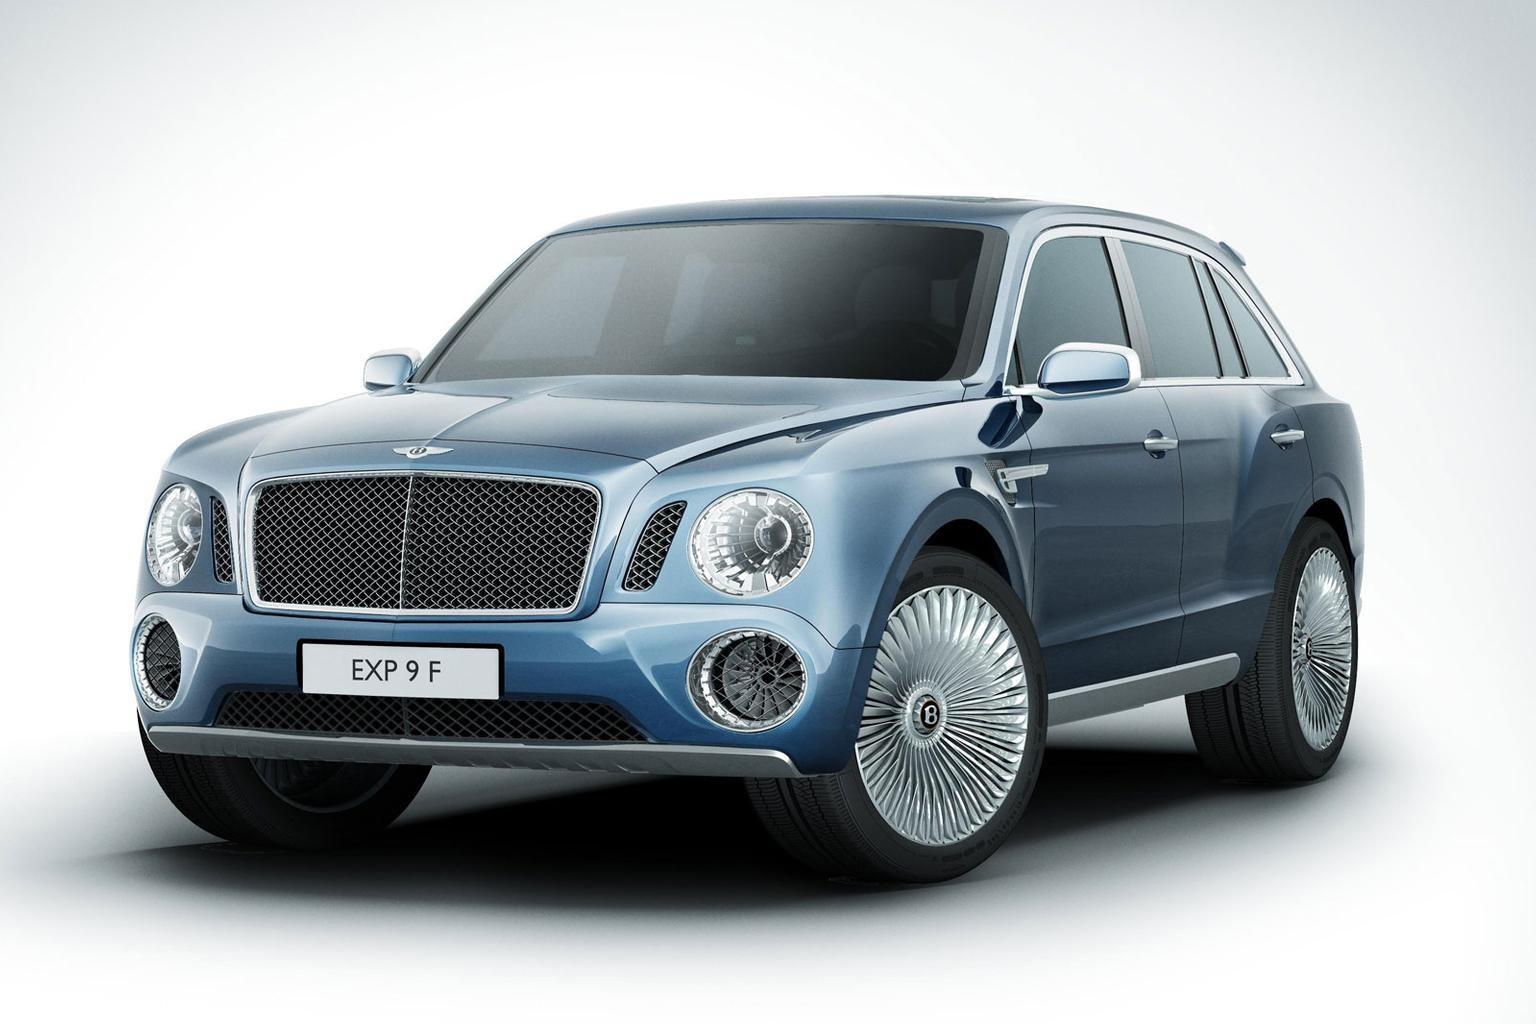 New-look Bentley SUV 'on track' for 2016